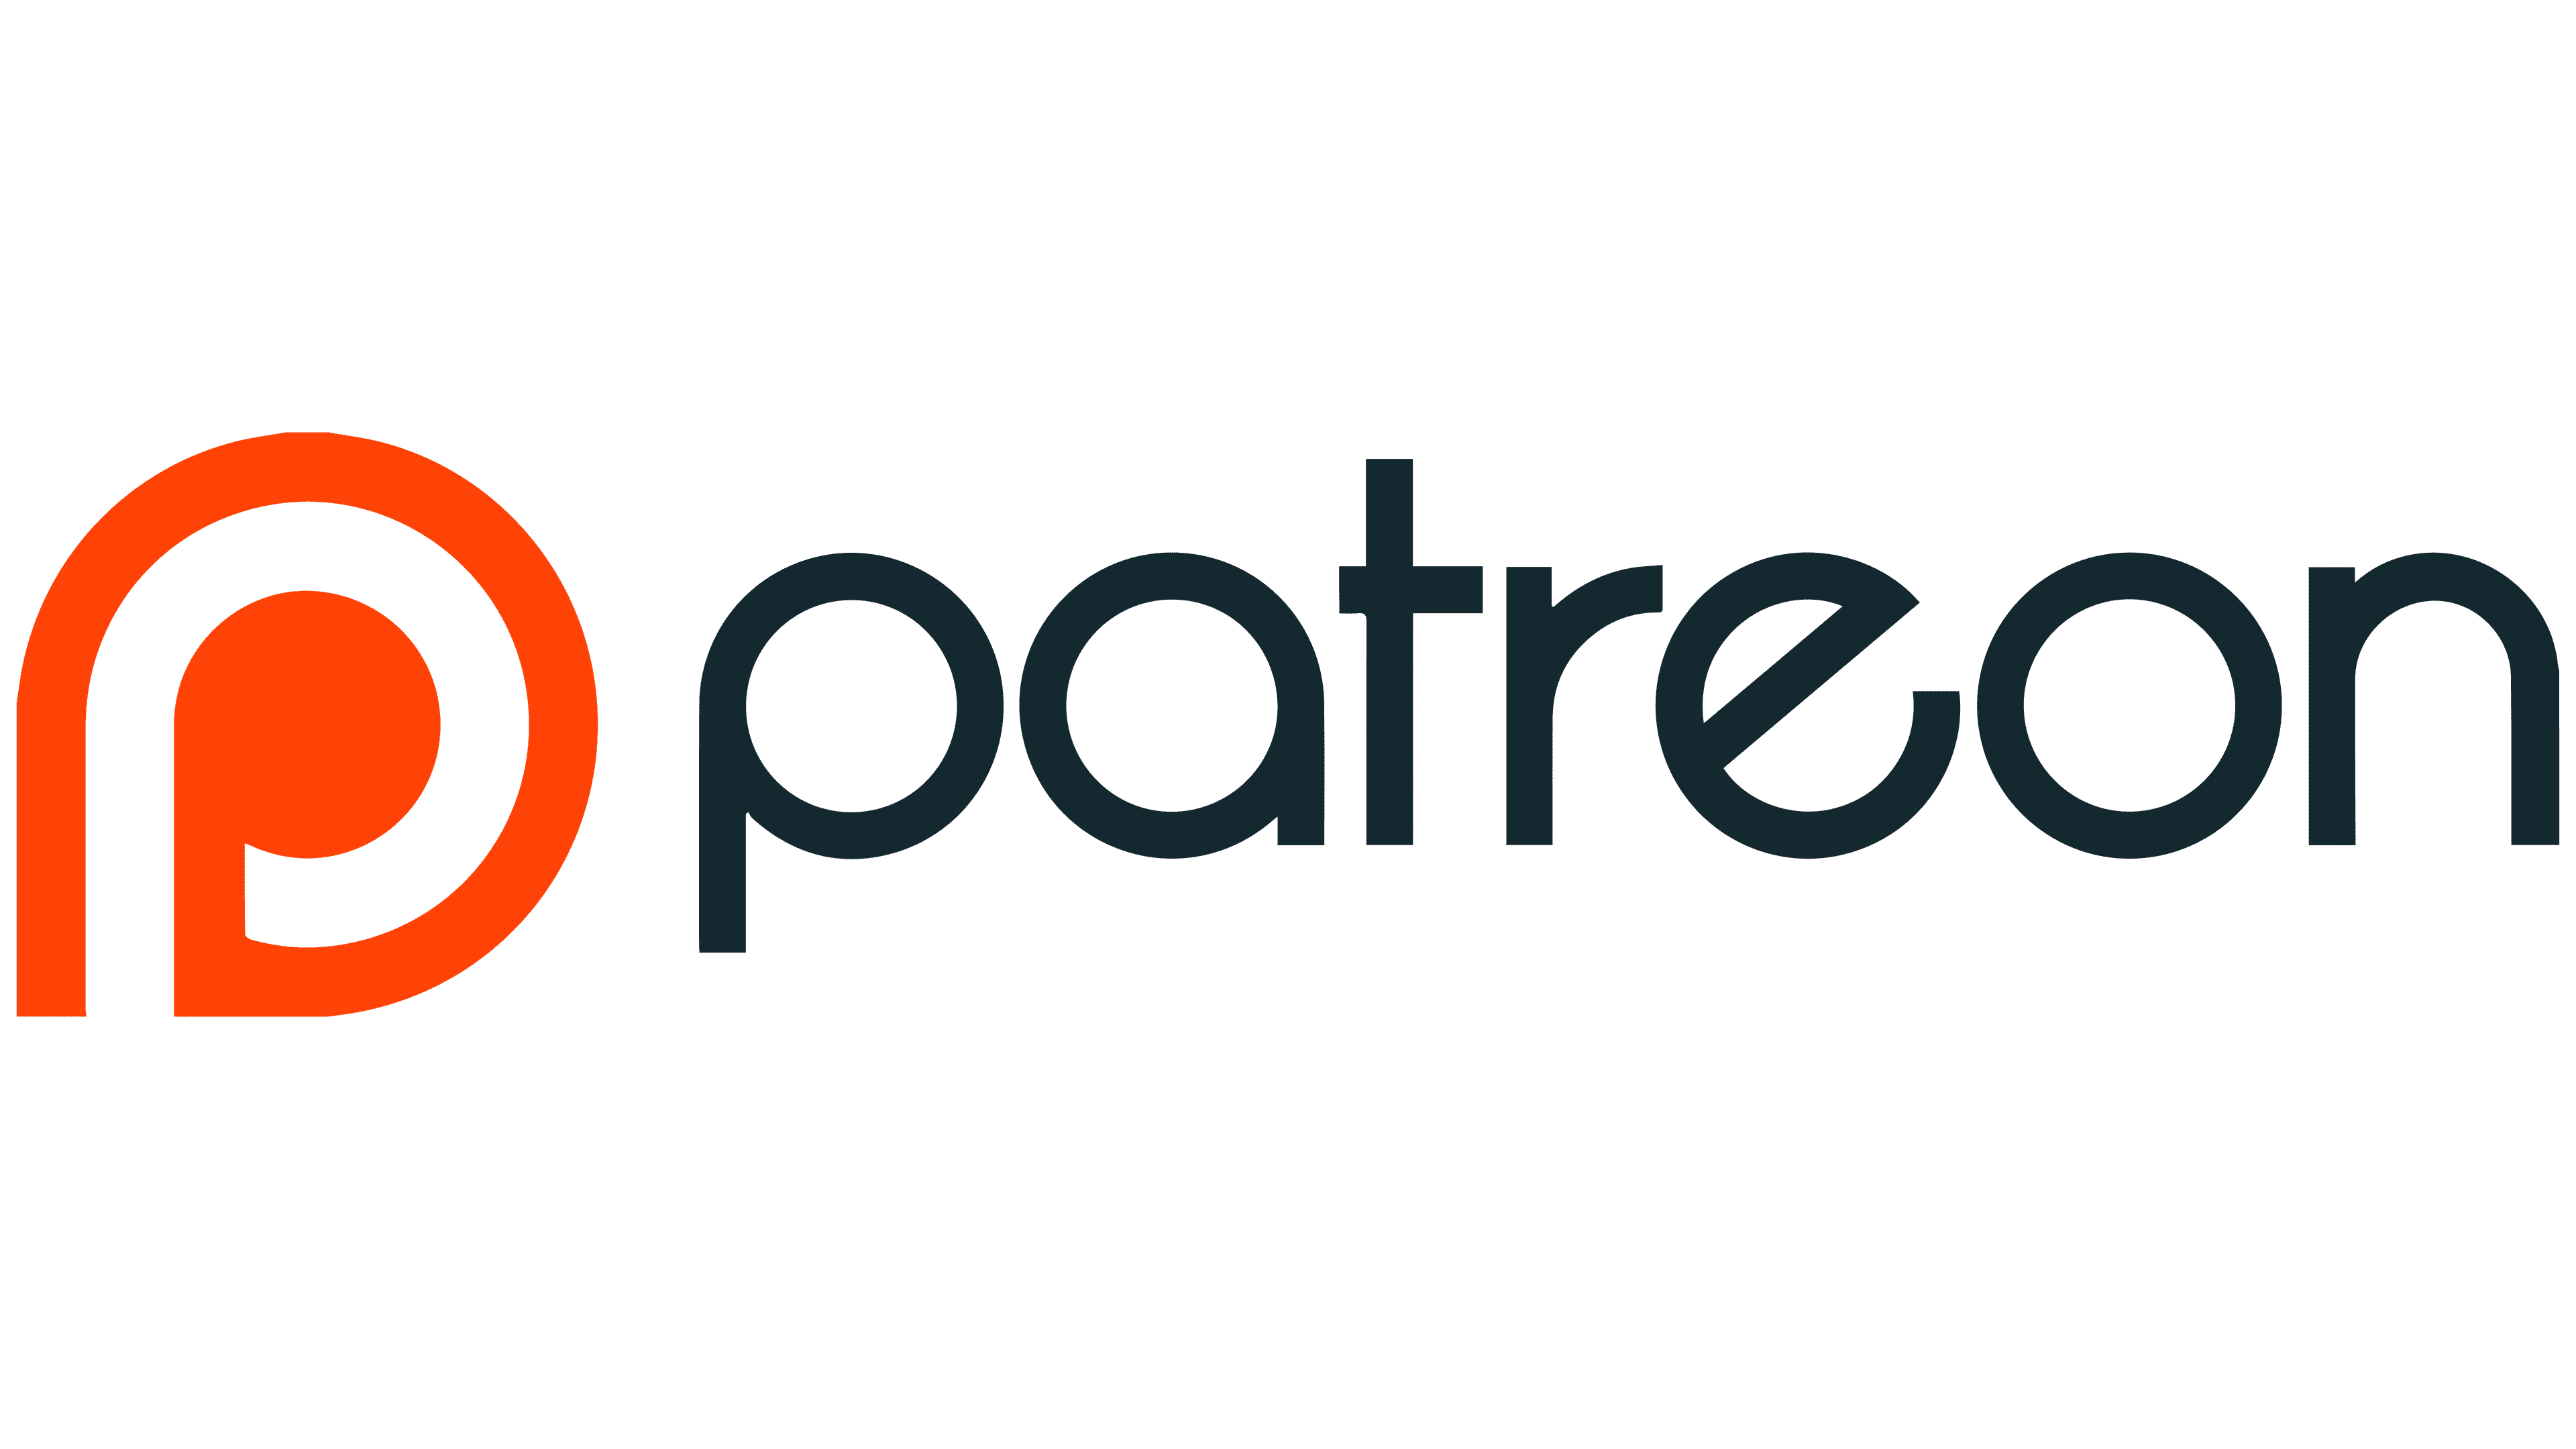 Patreon Logo, history, meaning, symbol, PNG